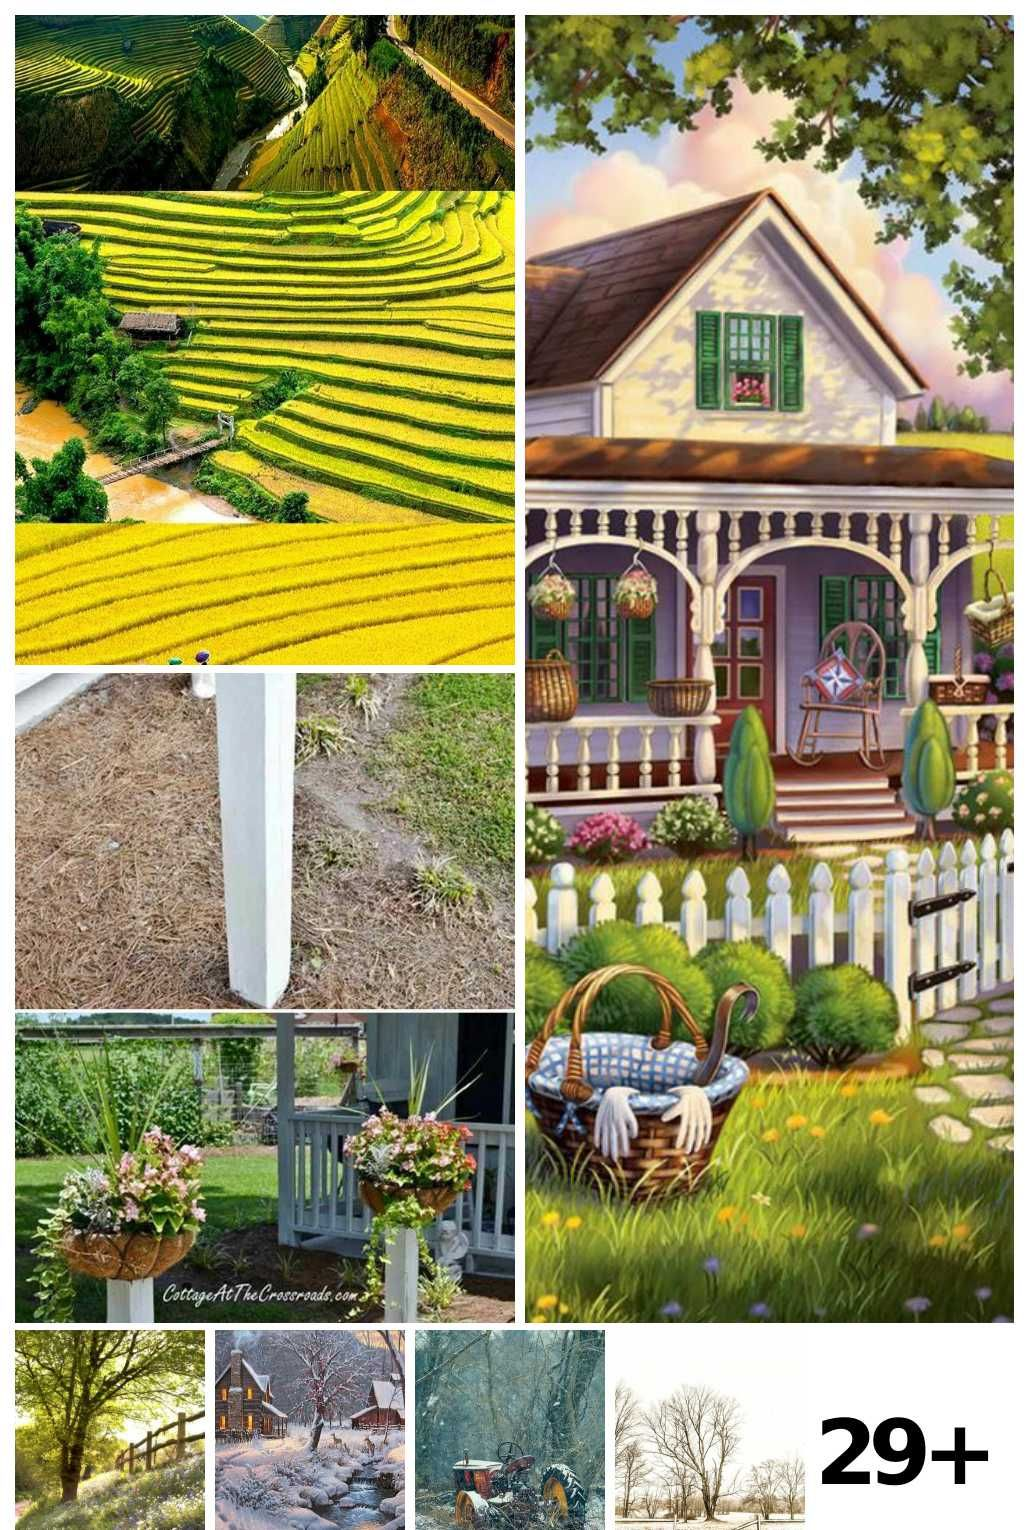 29 Landscaping Photos Farm Ideas in 2020 Best places in